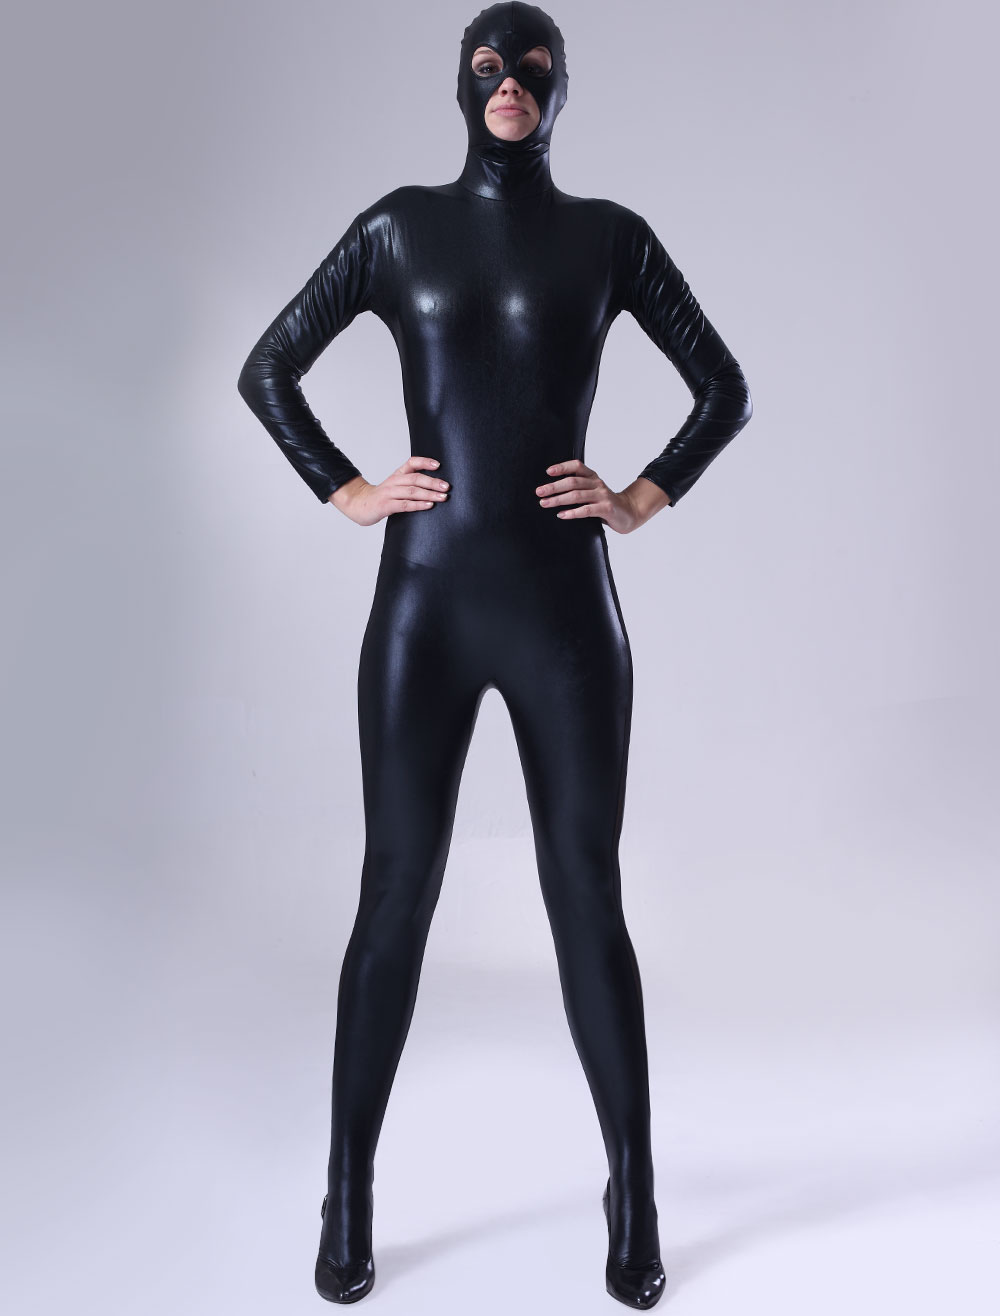 Zentai Suit Black Shiny Metallic Eyes Mouth Opened Catsuit Halloween